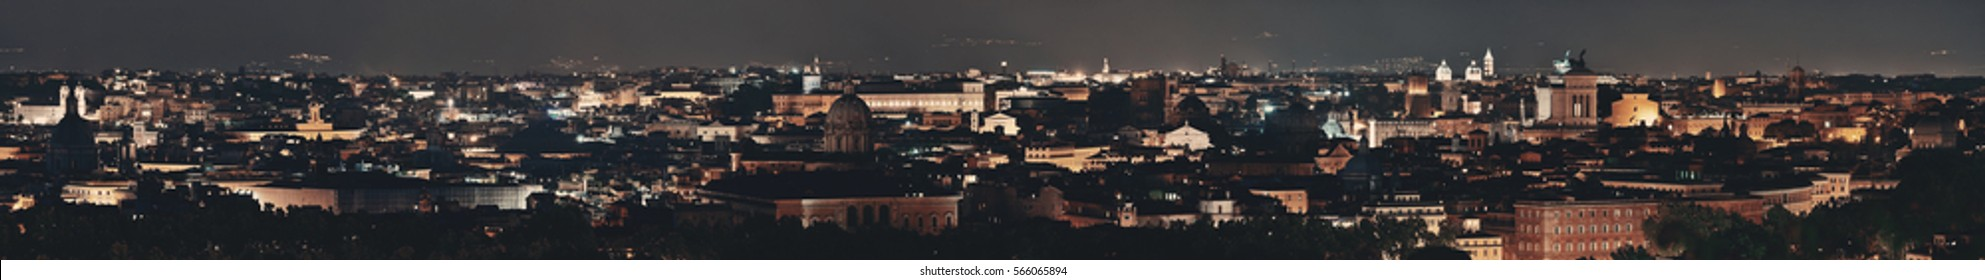 Rome rooftop panorama view with skyline and ancient architecture in Italy at night.